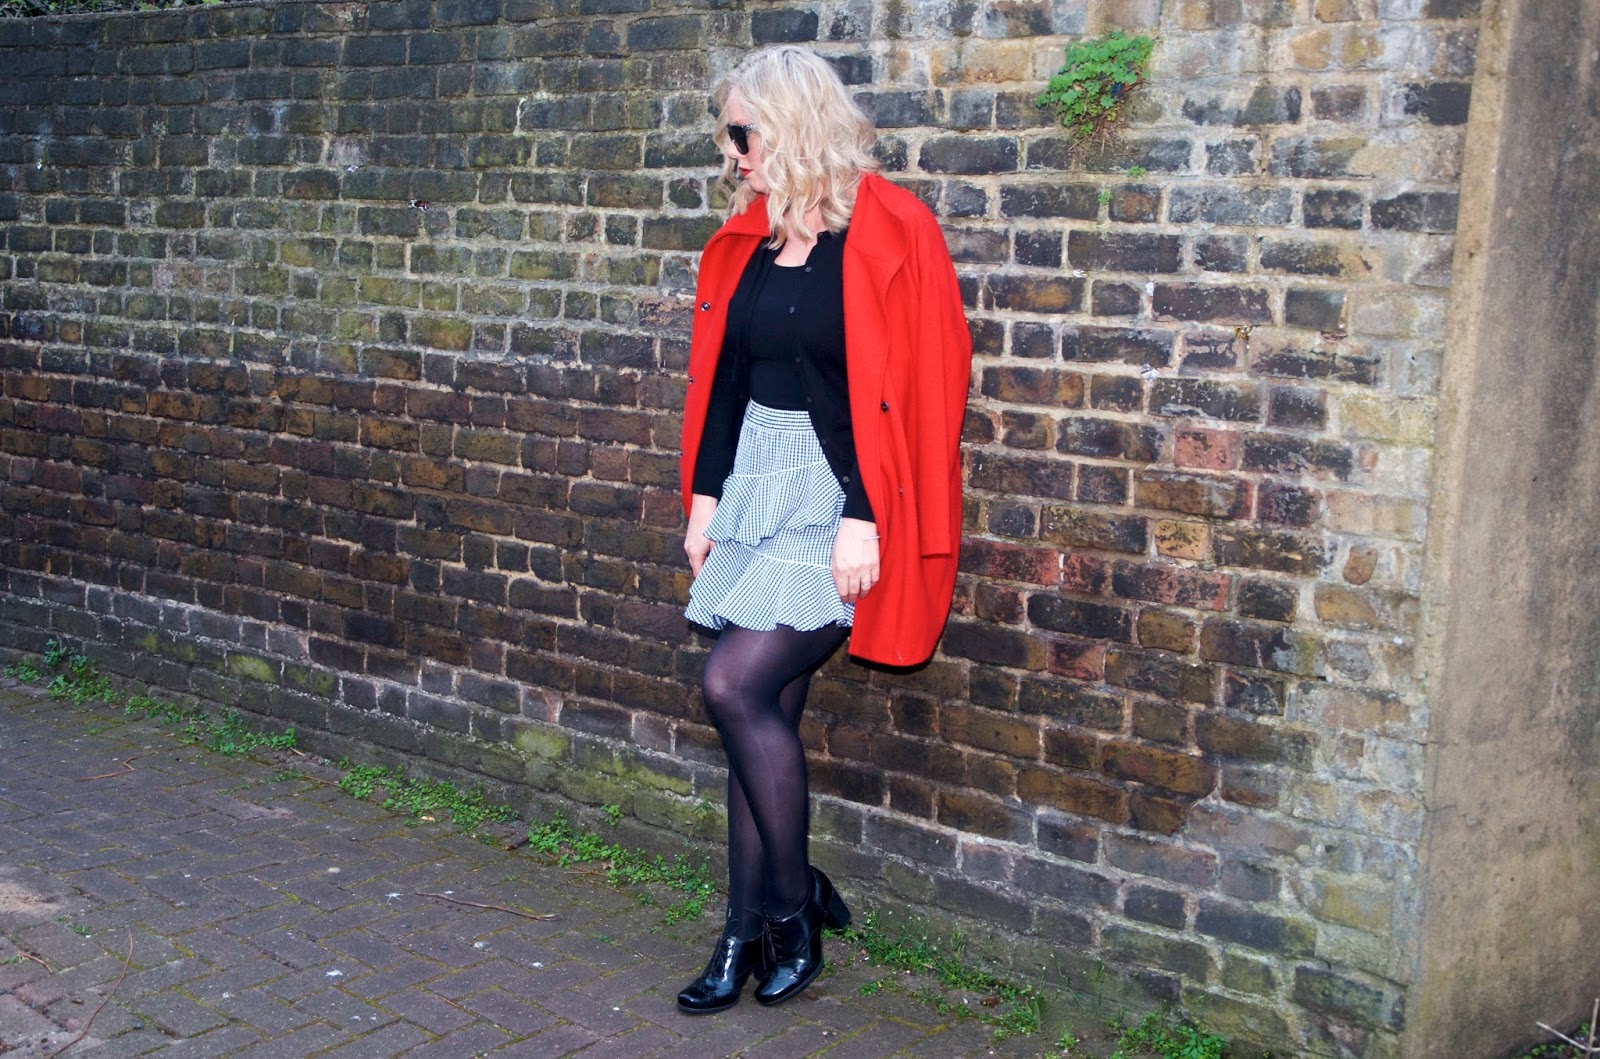 leaning on a brick wall with a red coat